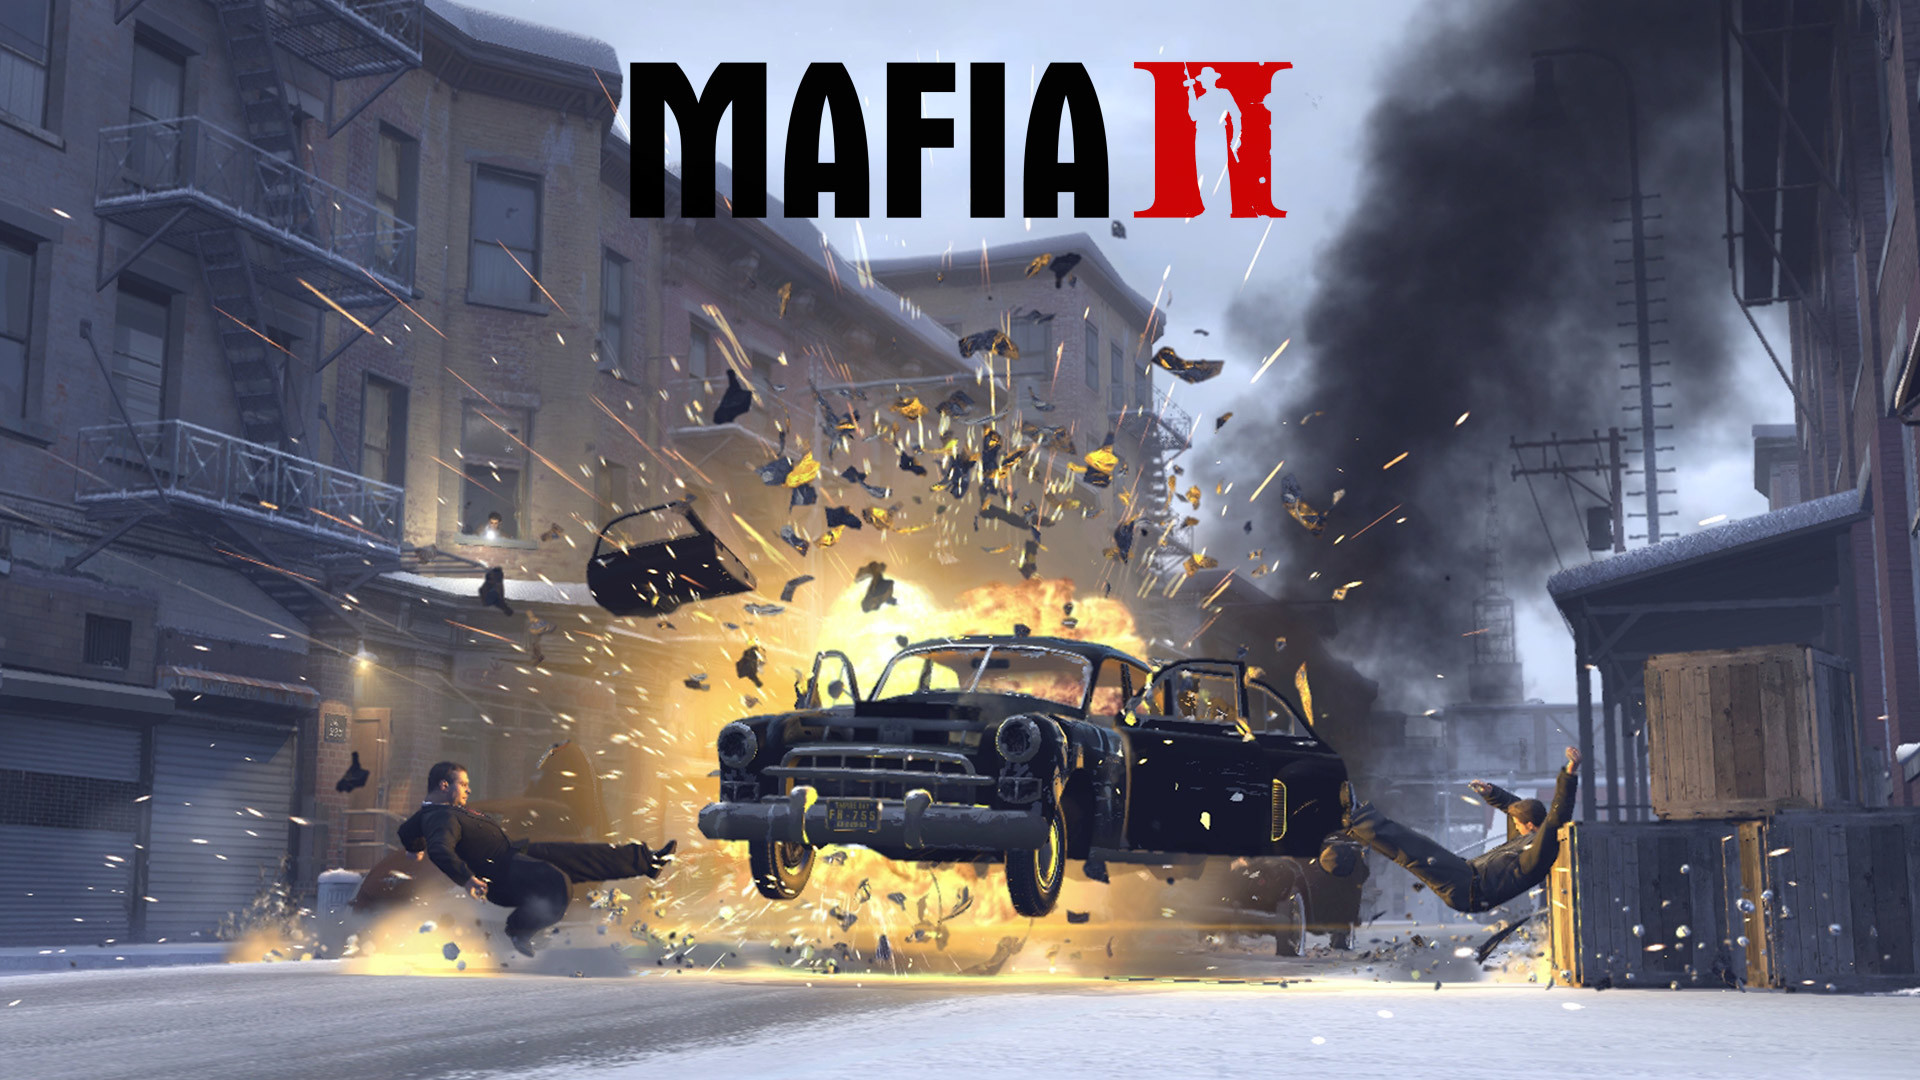 Related Pictures mafia ii wallpapers playstationwallpapers com